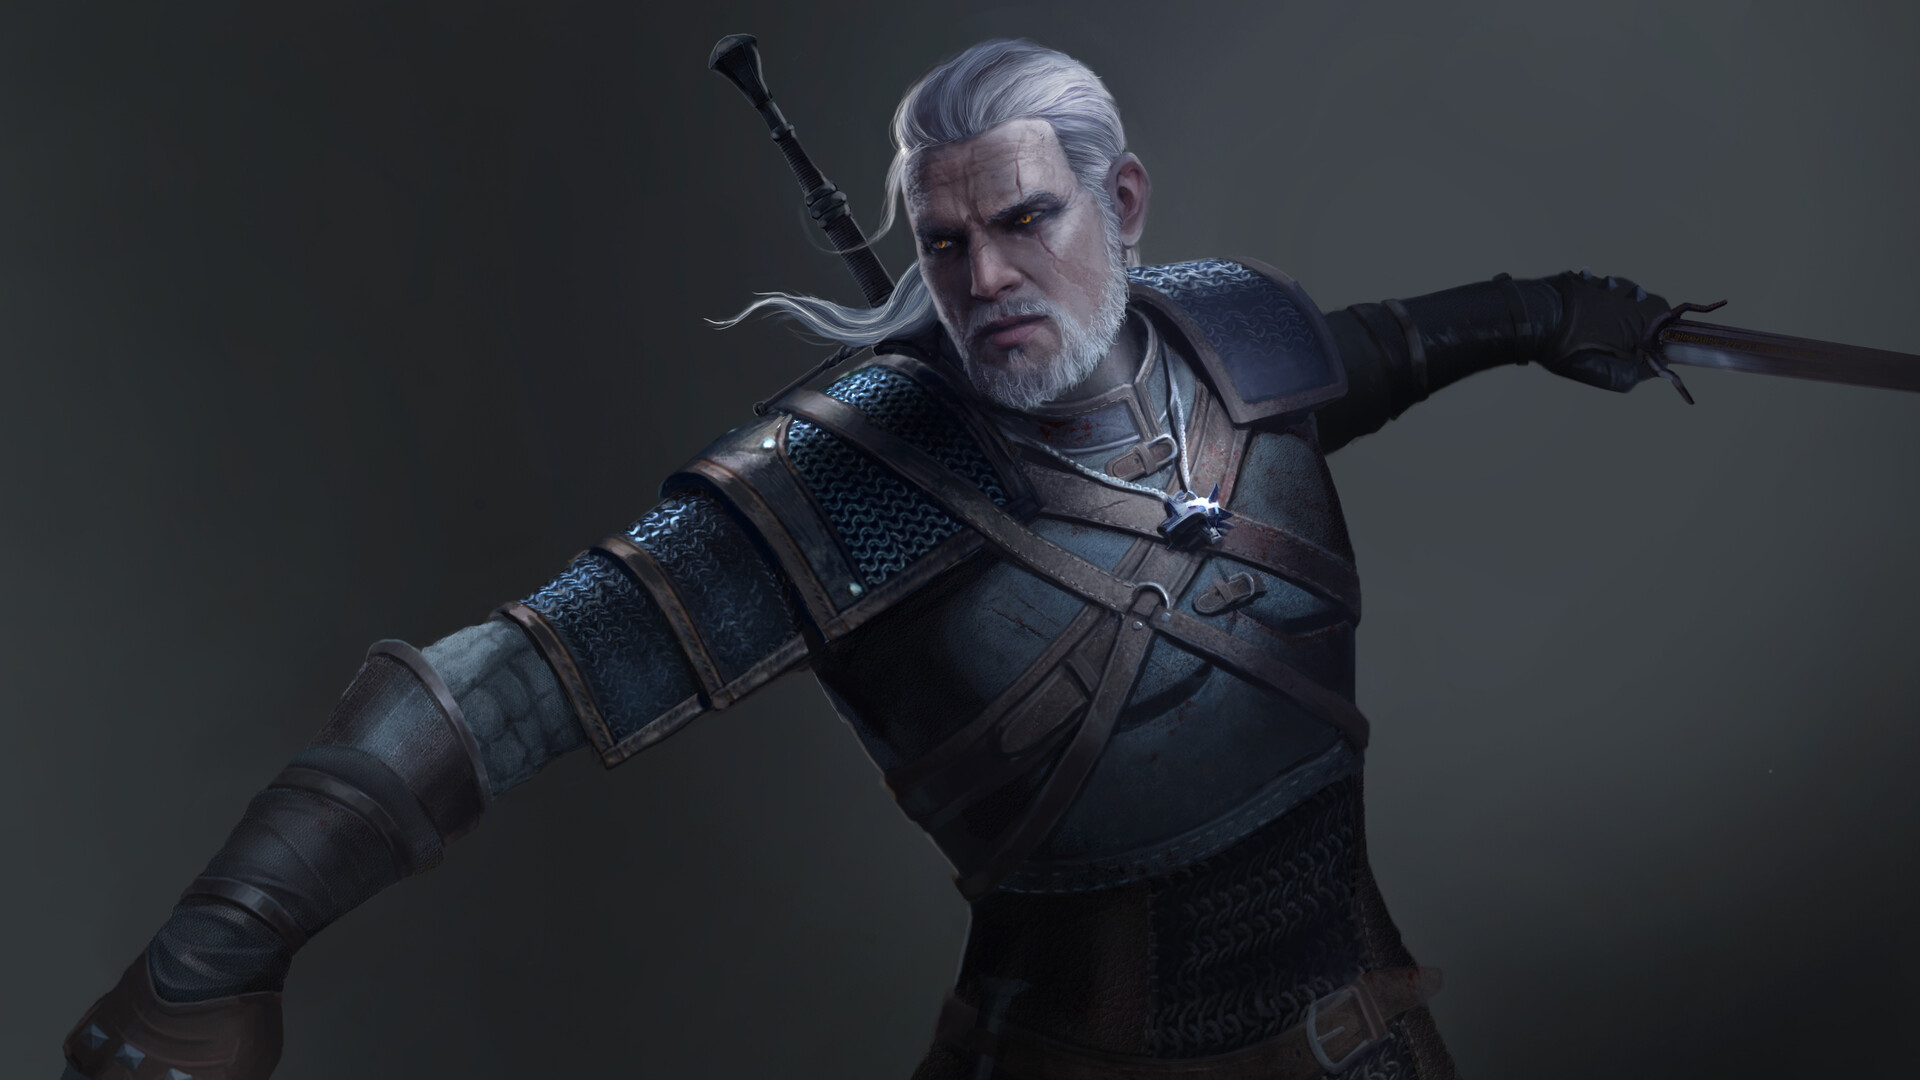 1920x1080 Geralt In The Witcher 3 1080p Laptop Full Hd